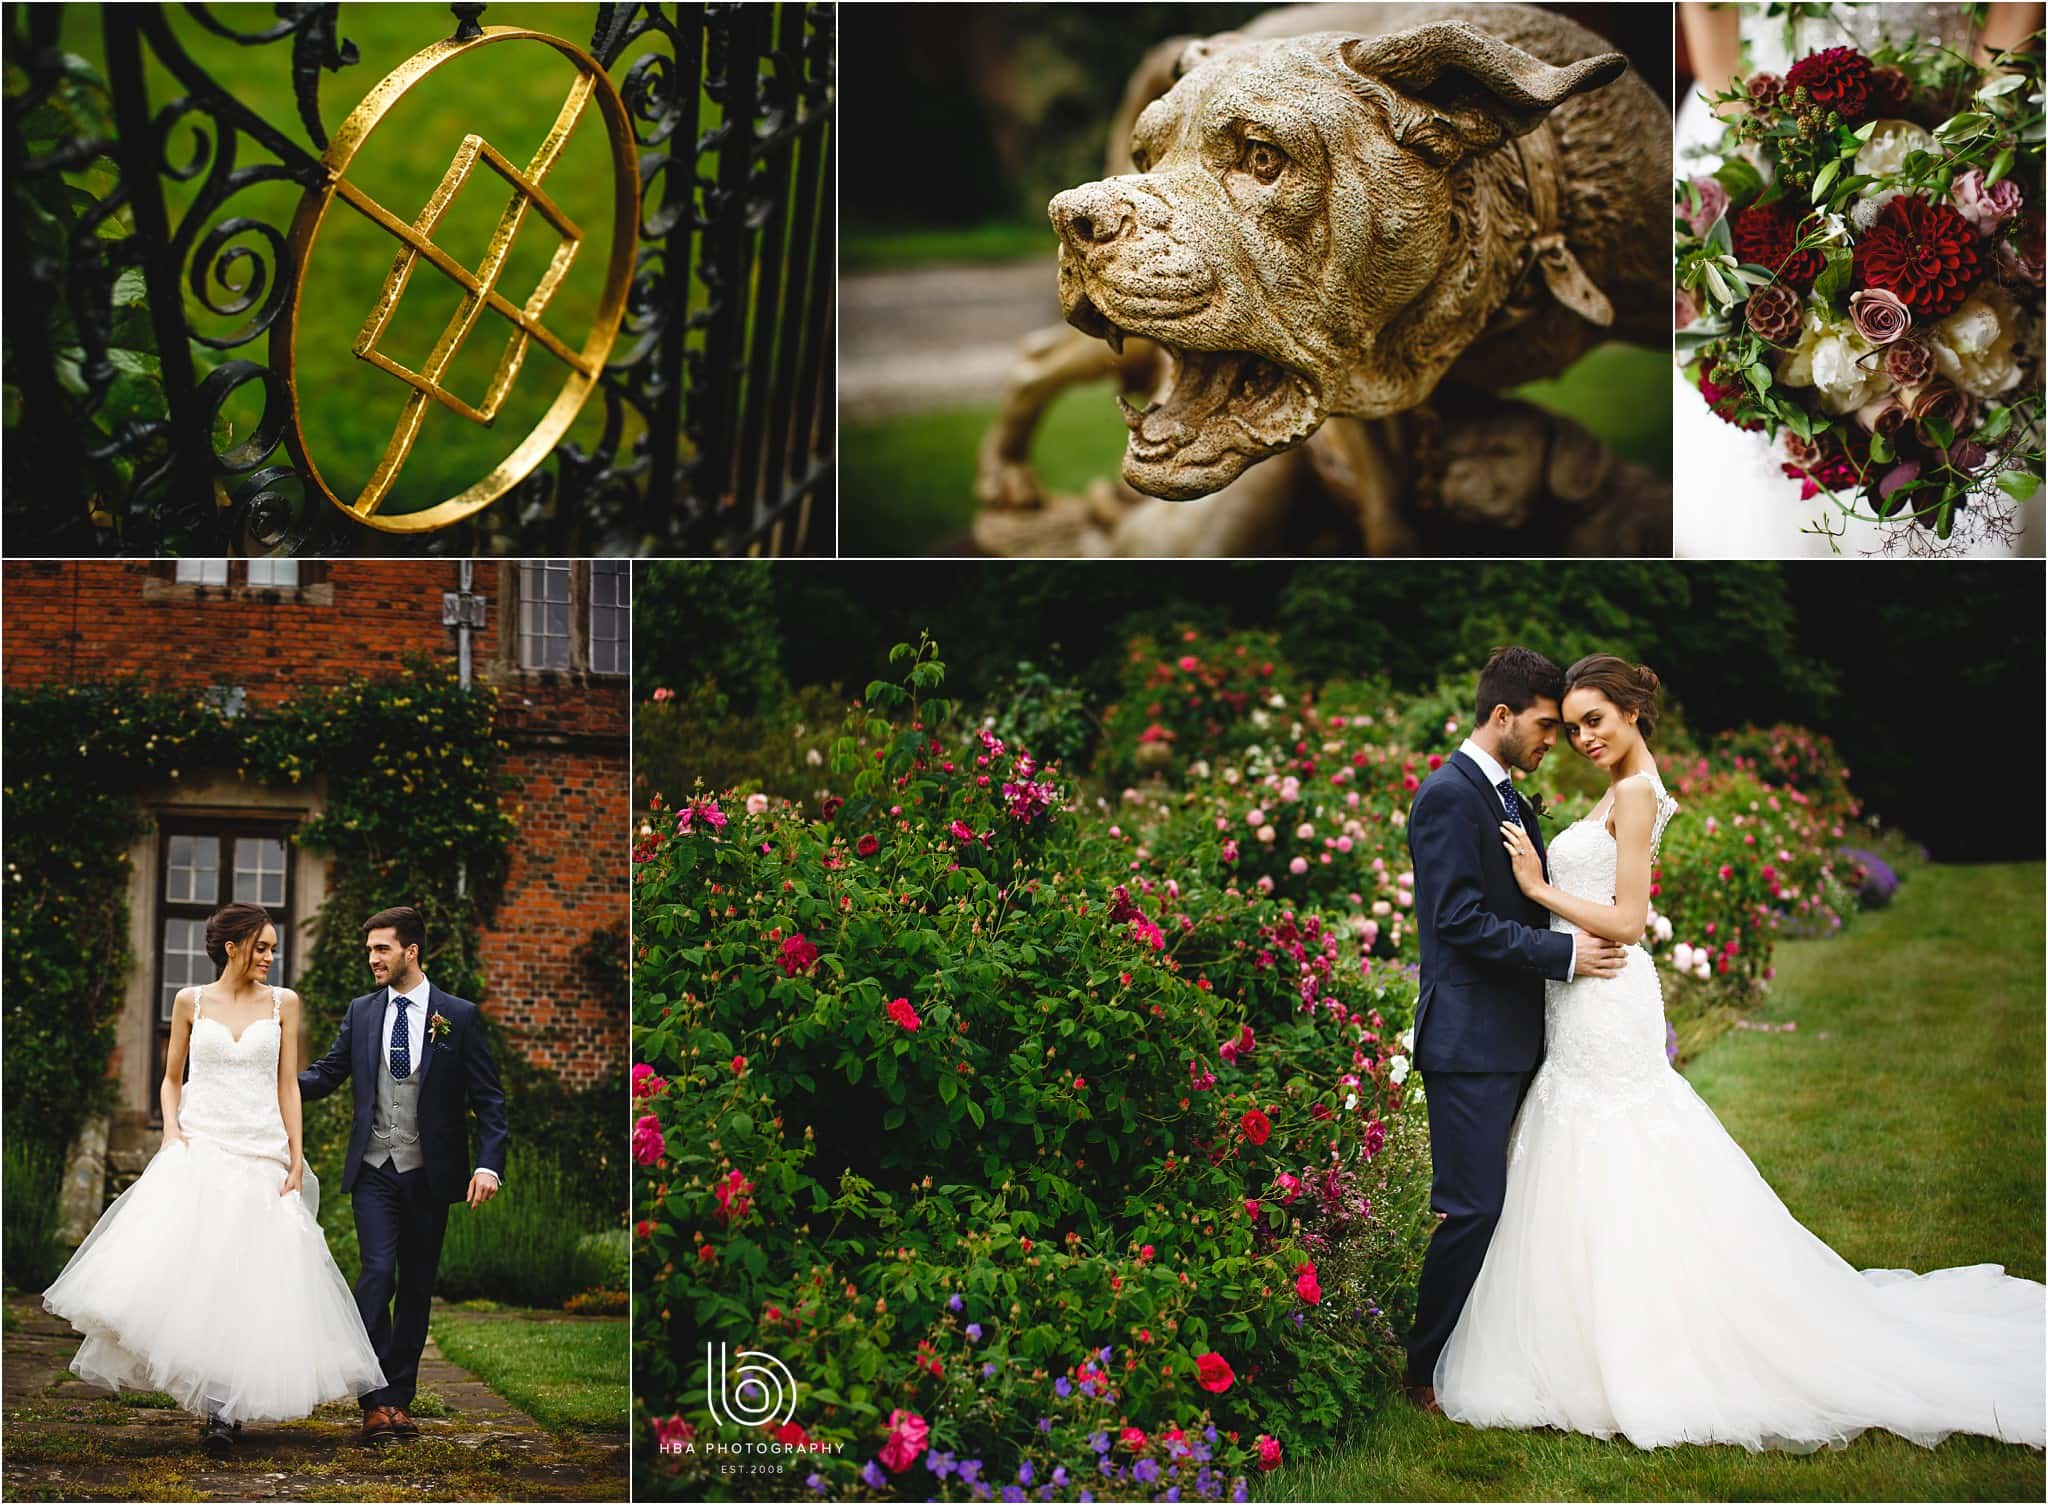 the bride and groom in the gardens at Dorfold Hall